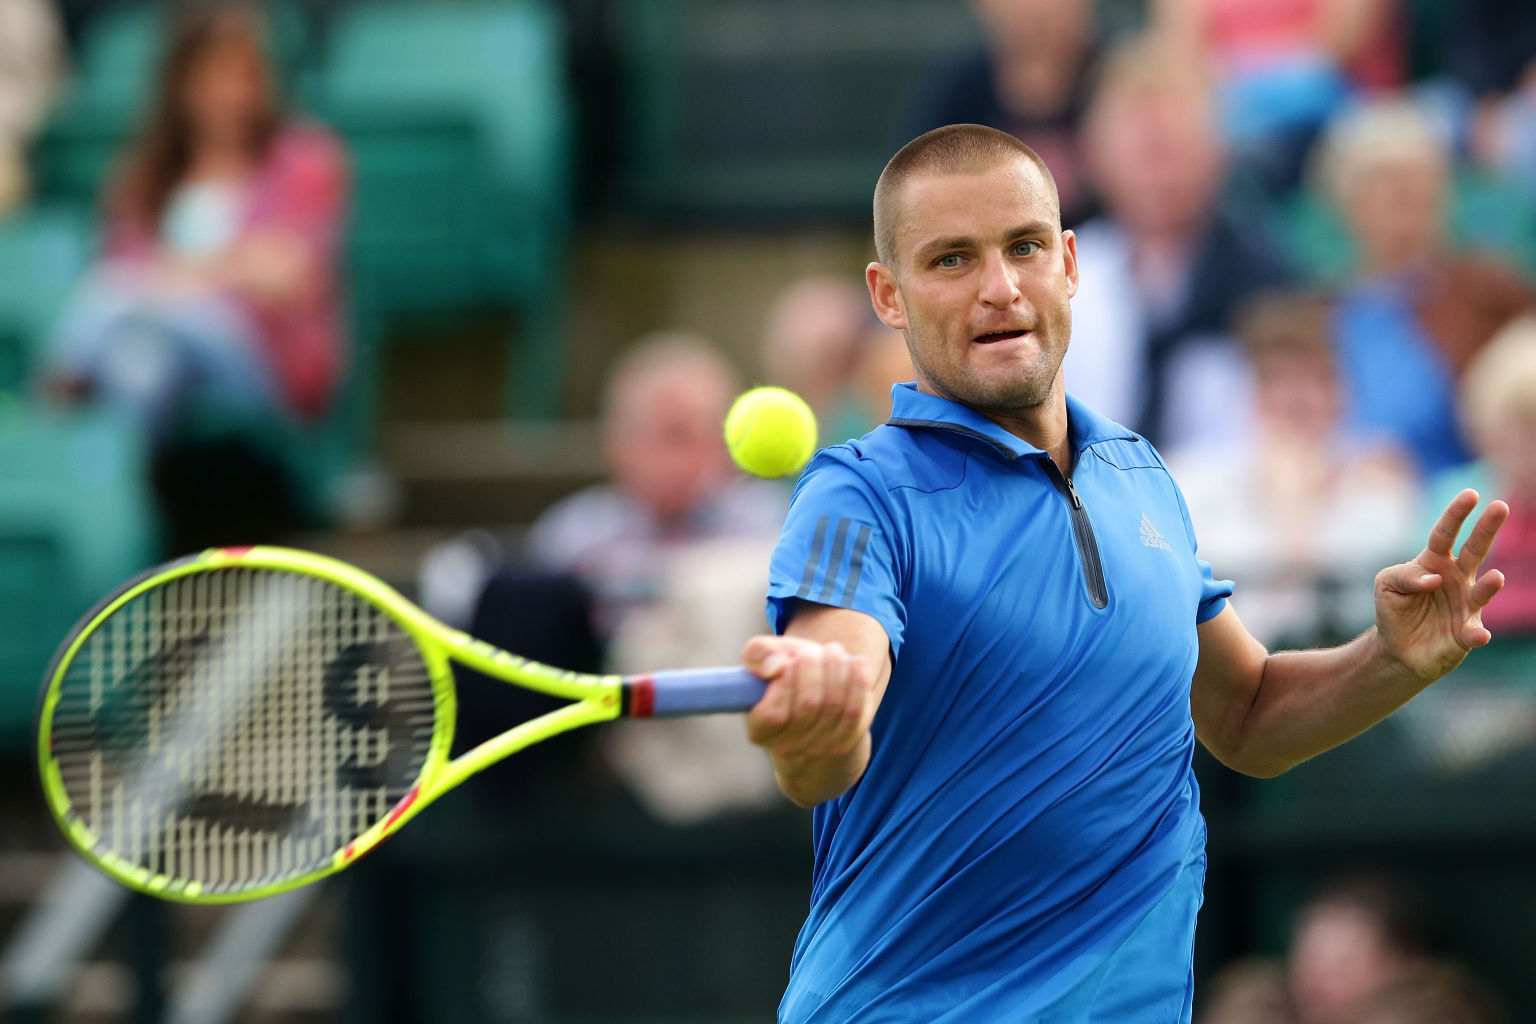 NOTTINGHAM, ENGLAND - JUNE 22:  Mikhail Youzhny of Russia plays a forehand during his men's singles match against Gilles Muller of Luxembourg during day three of the ATP Aegon Open Nottingham at Nottingham Tennis Centre on June 22, 2016 in Nottingham, England.  (Photo by Daniel Smith/Getty Images)